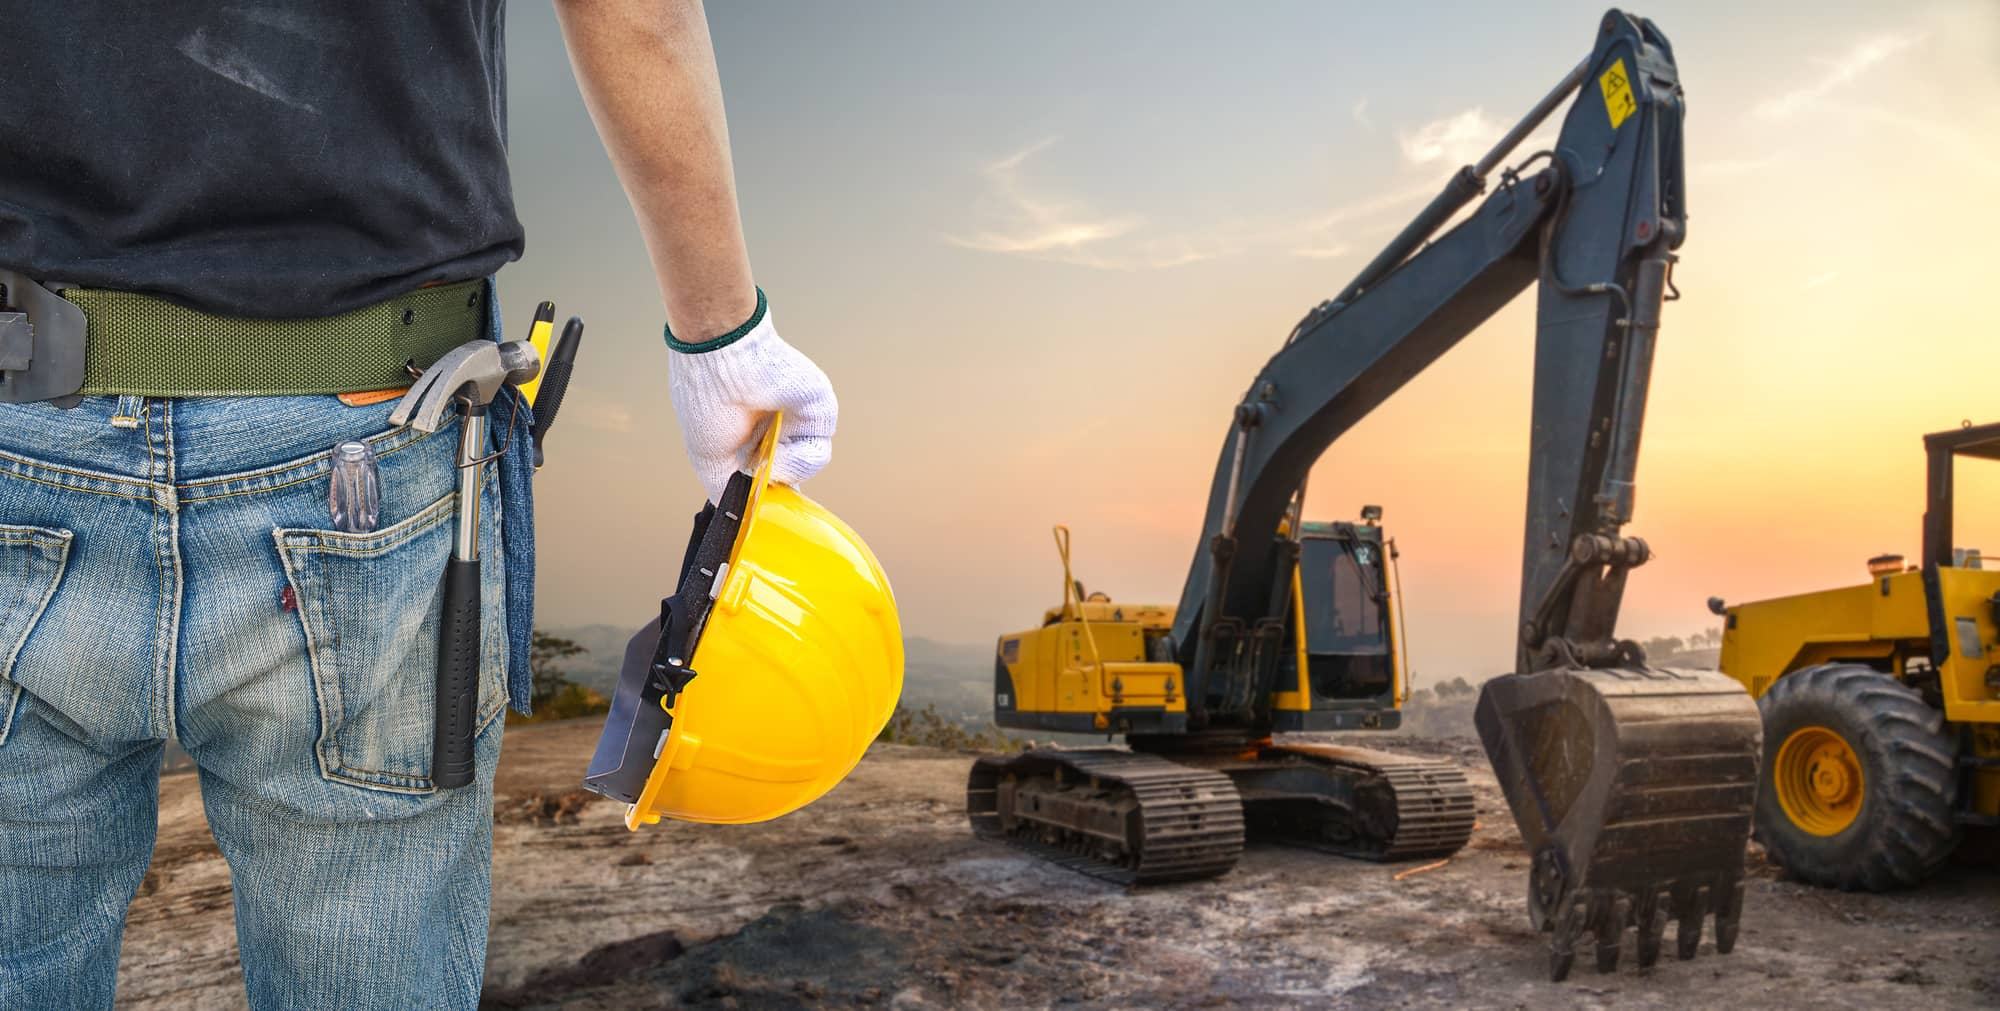 Buying Used Construction Equipment: A Quick Guide